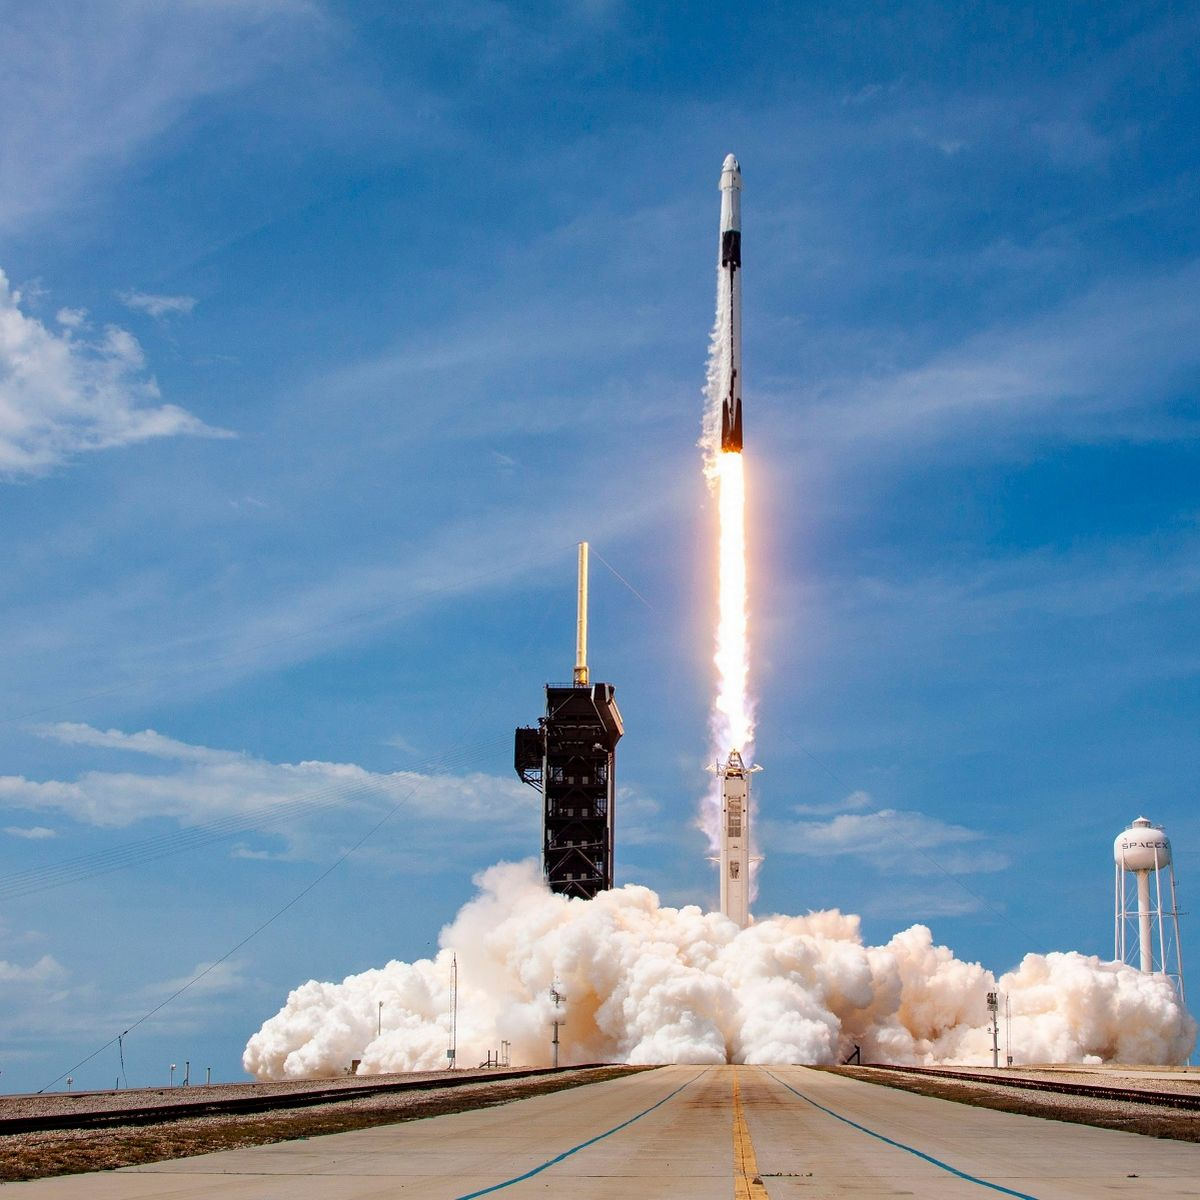 SpaceX is set for the second launch of Starlink broadband satellites this week